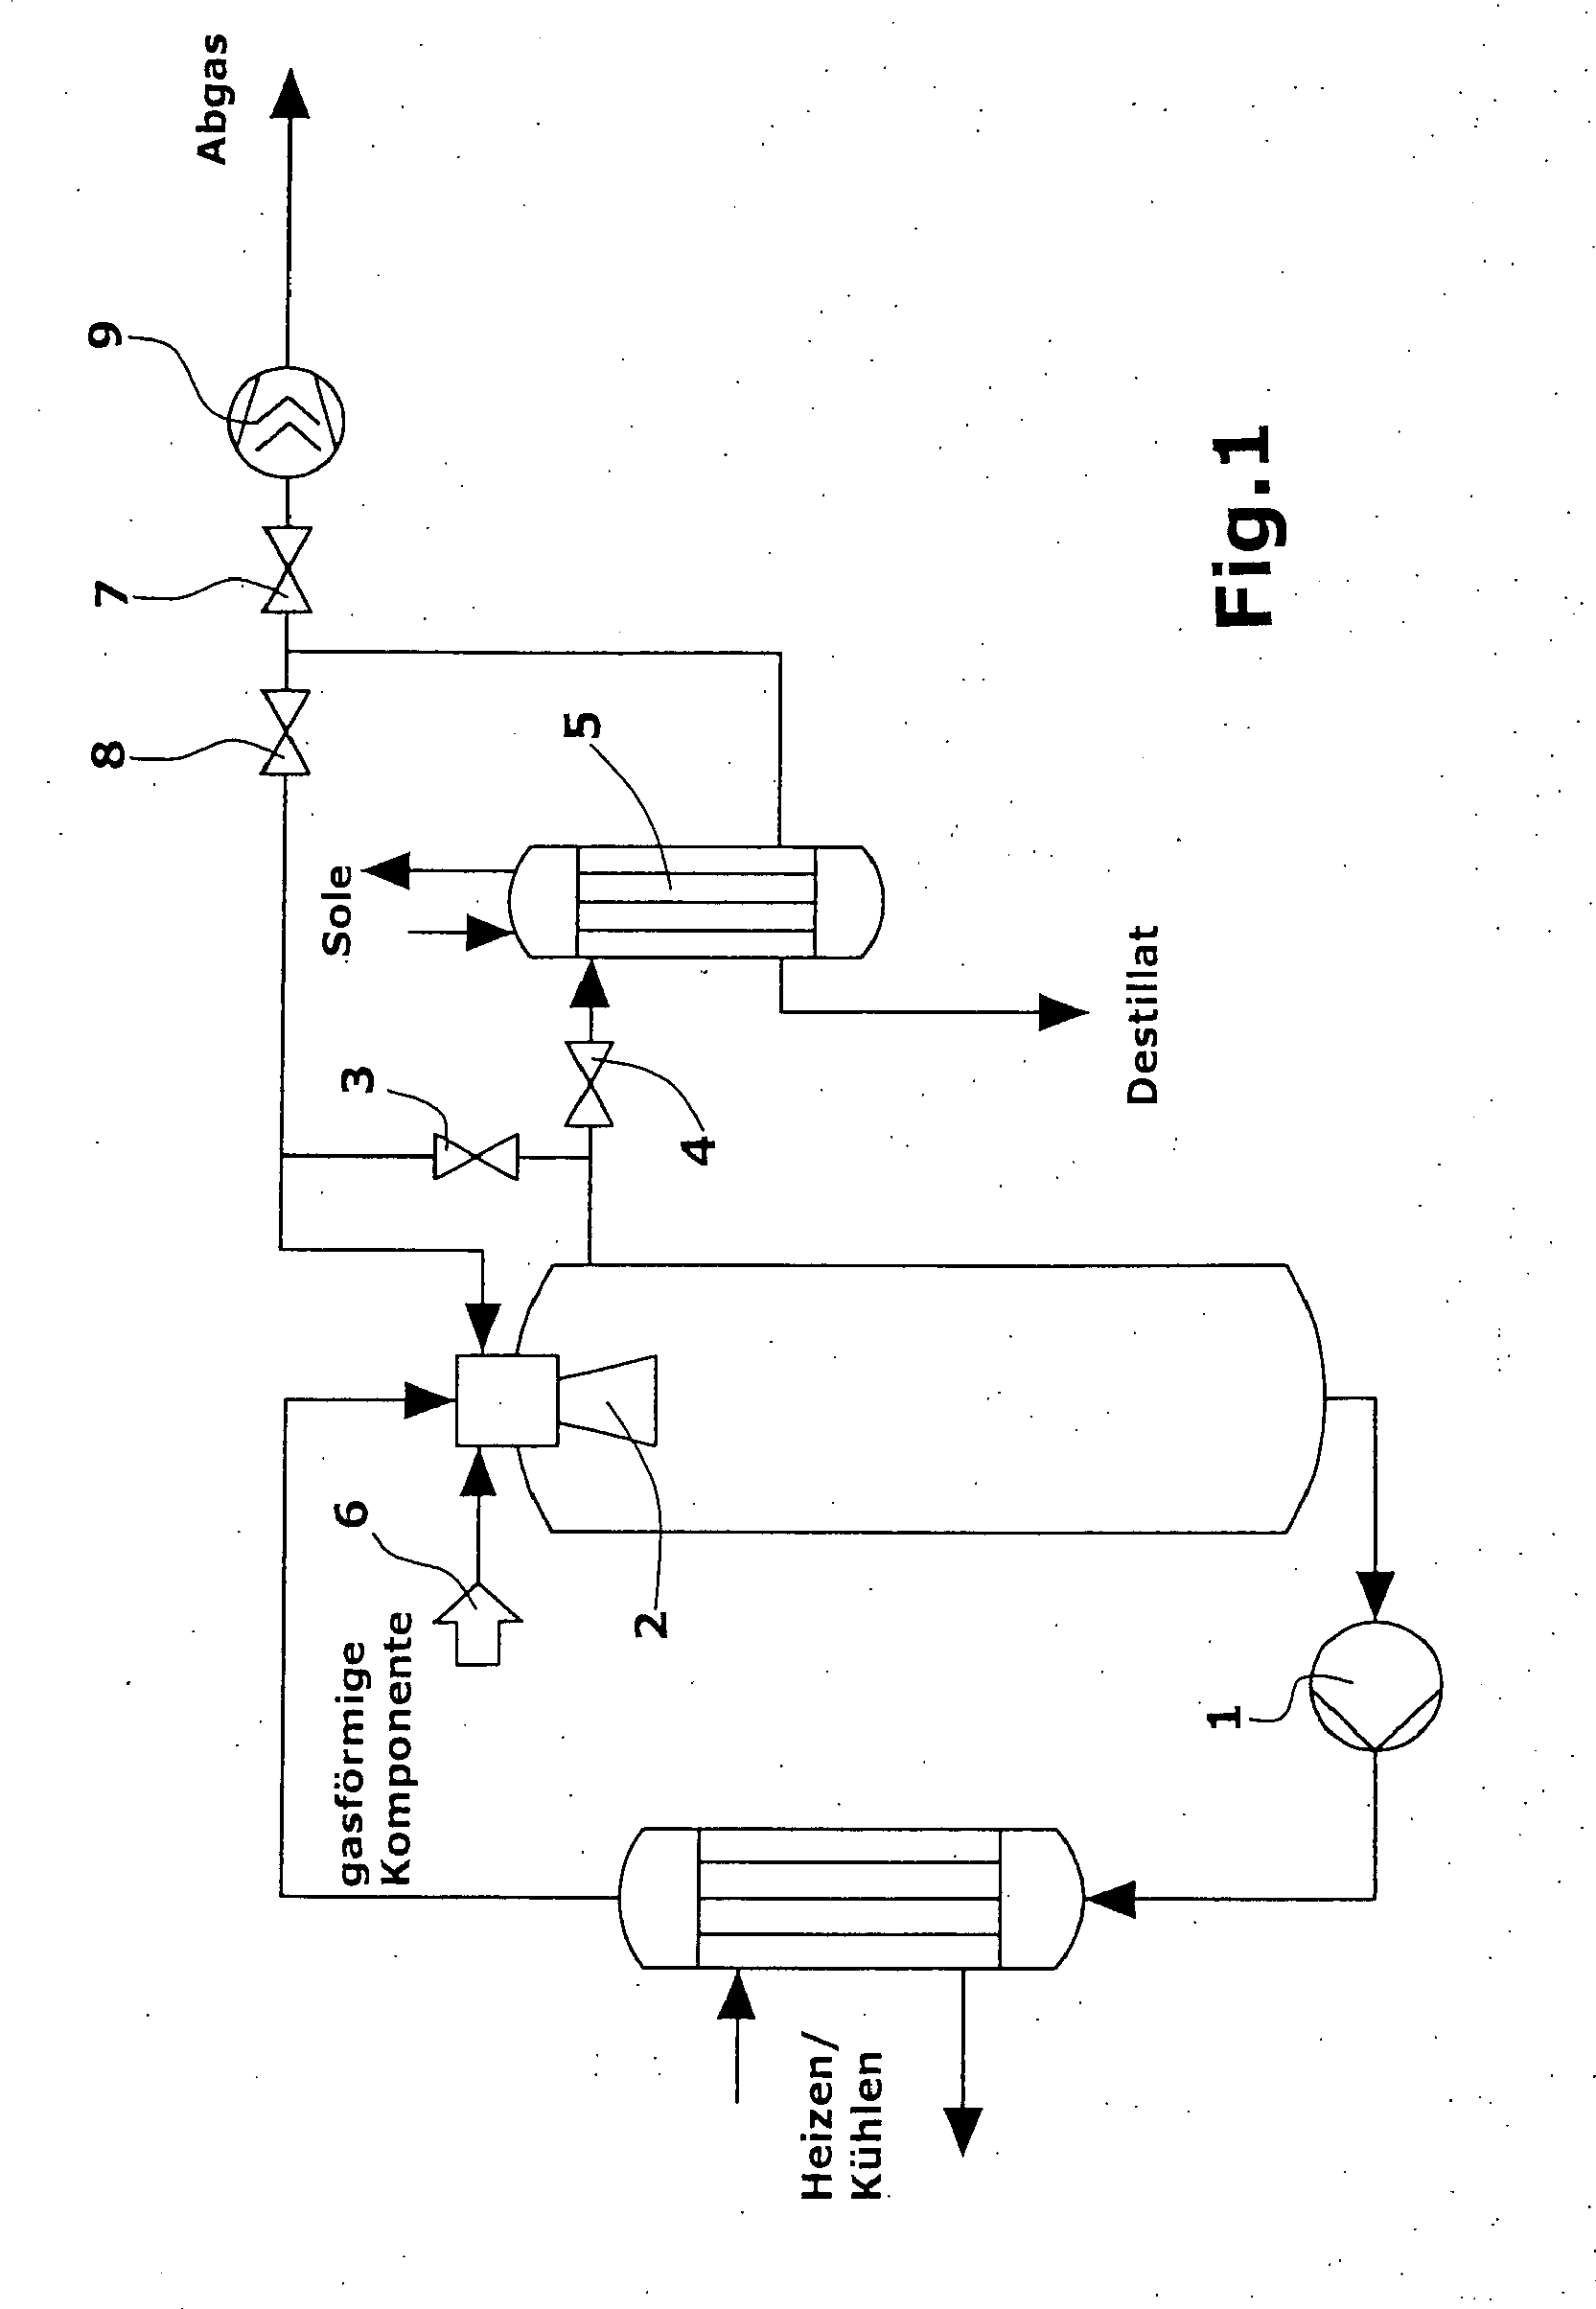 patent ep1685896a1 - equilibrium reactions and gas  liquid reaction in a loop reactor